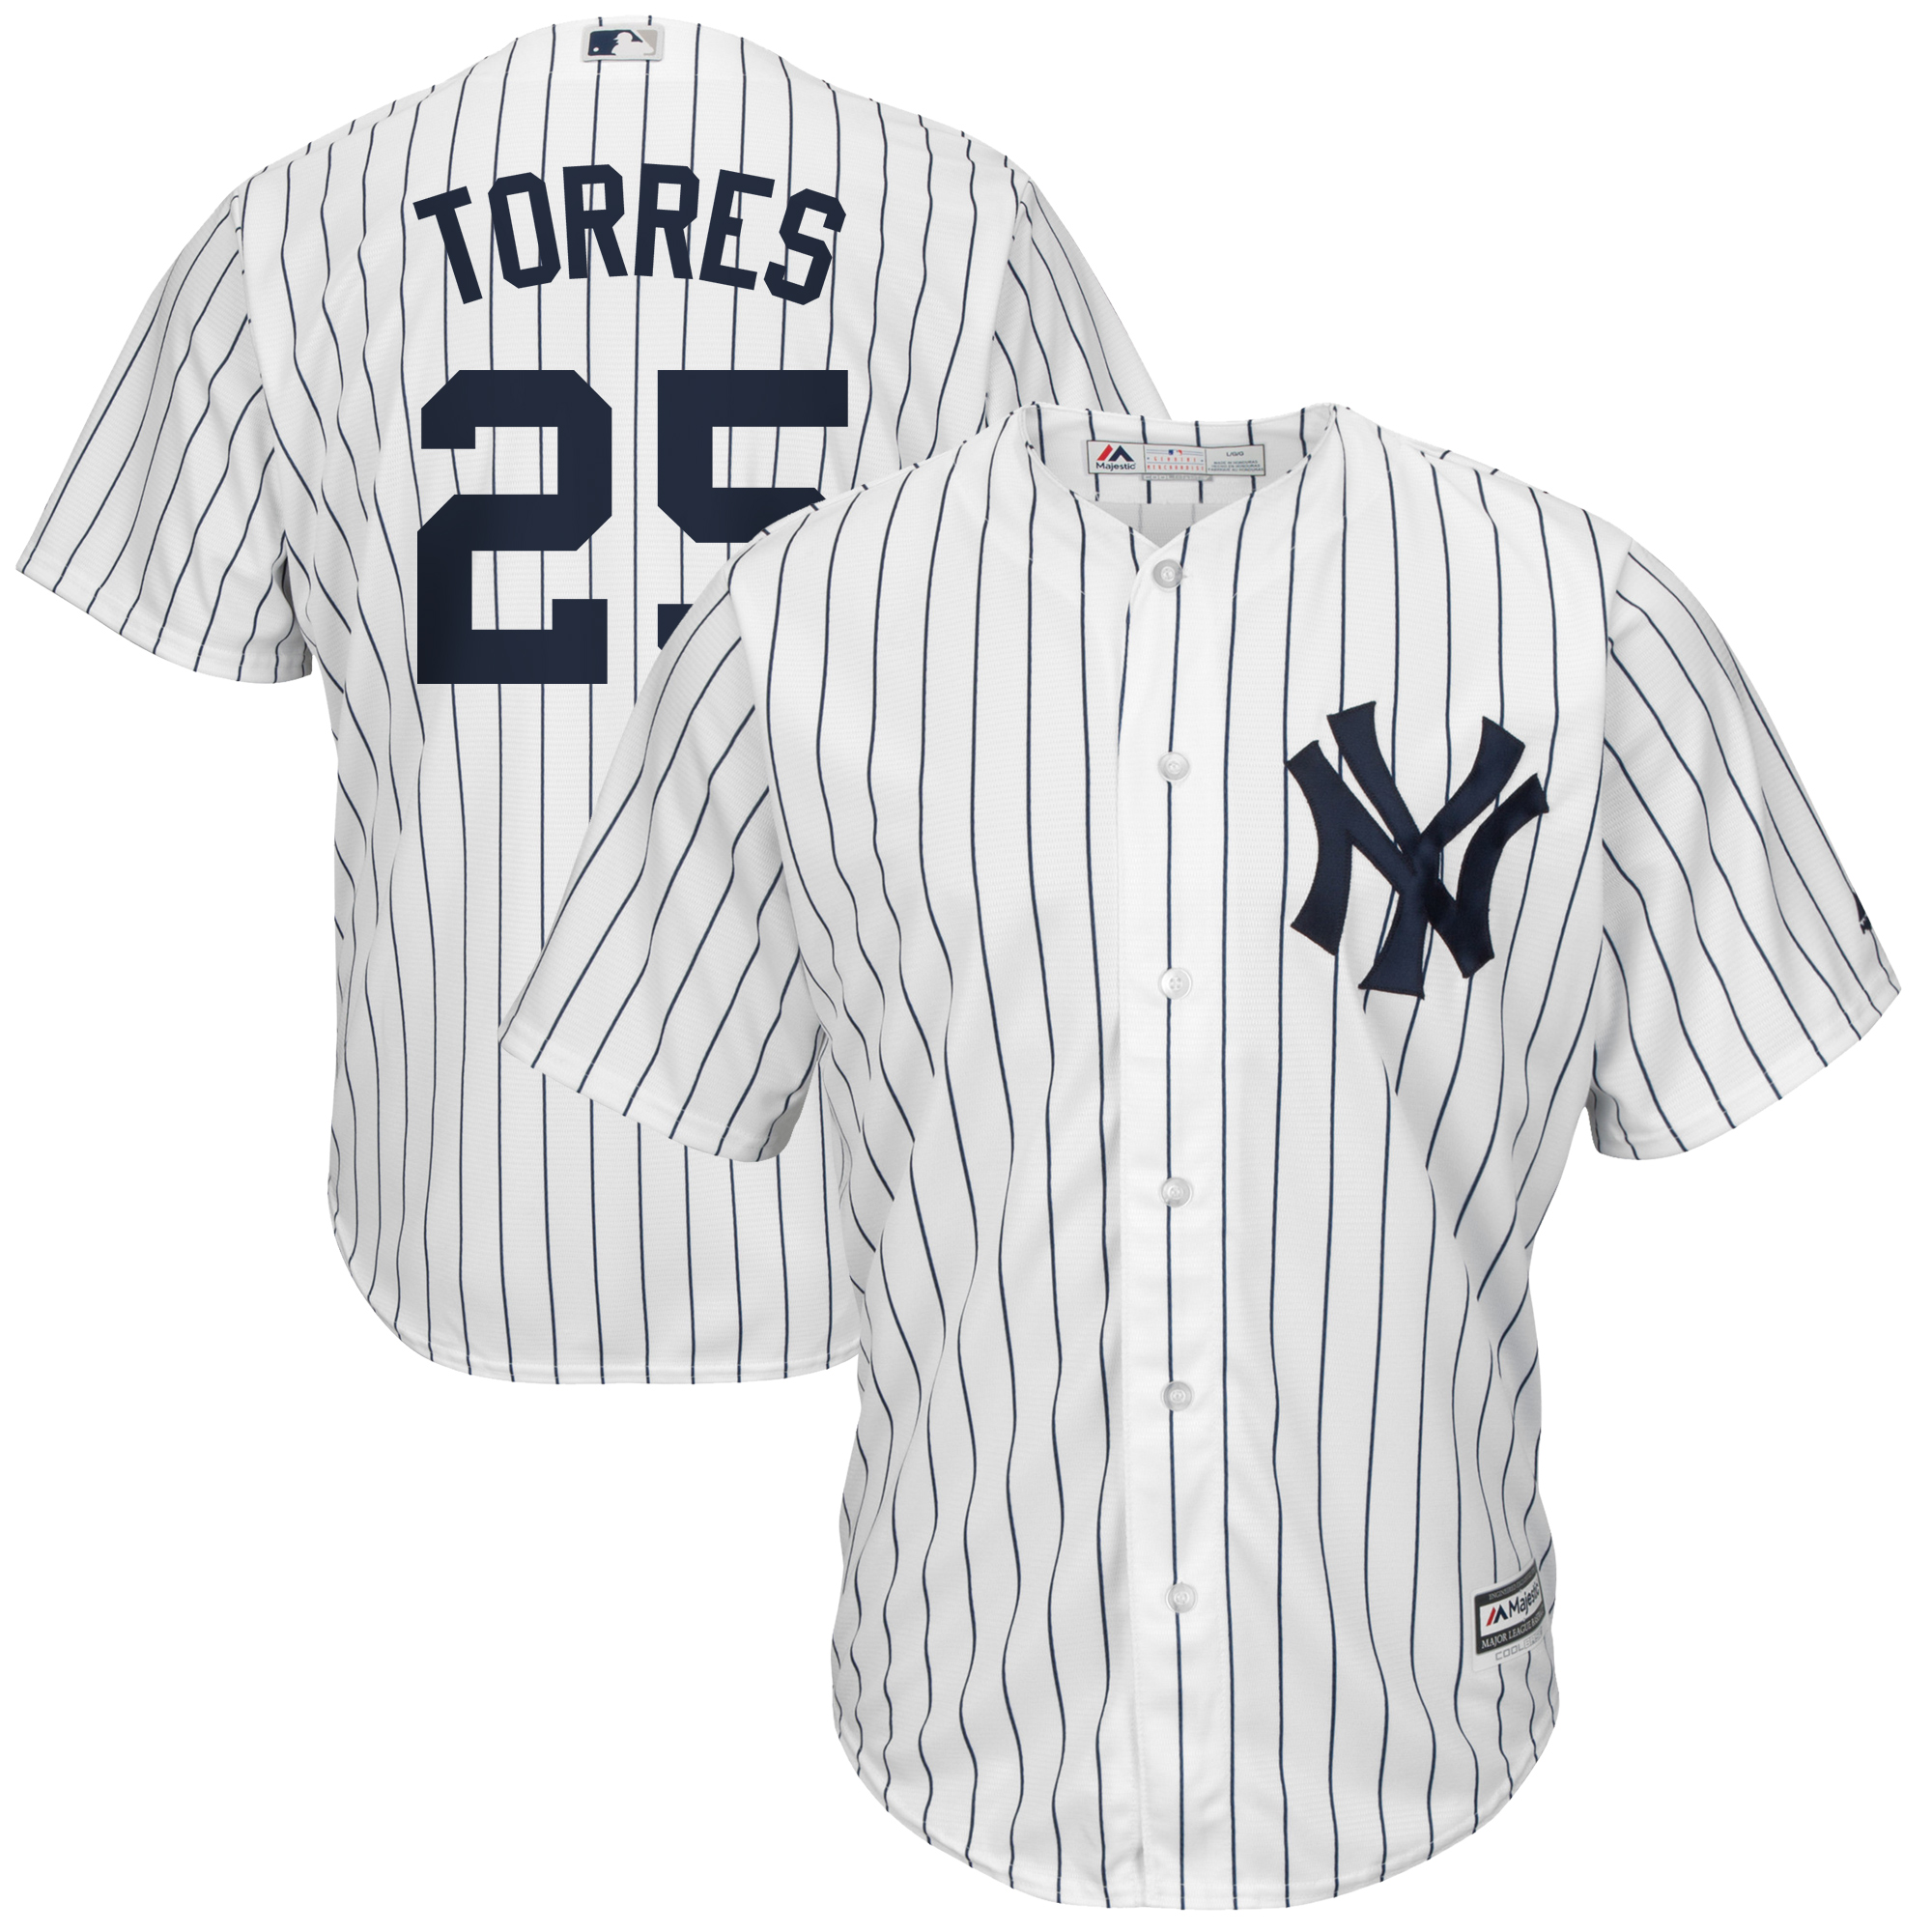 Gleyber Torres New York Yankees Majestic Official Cool Base Player Jersey - White/Navy